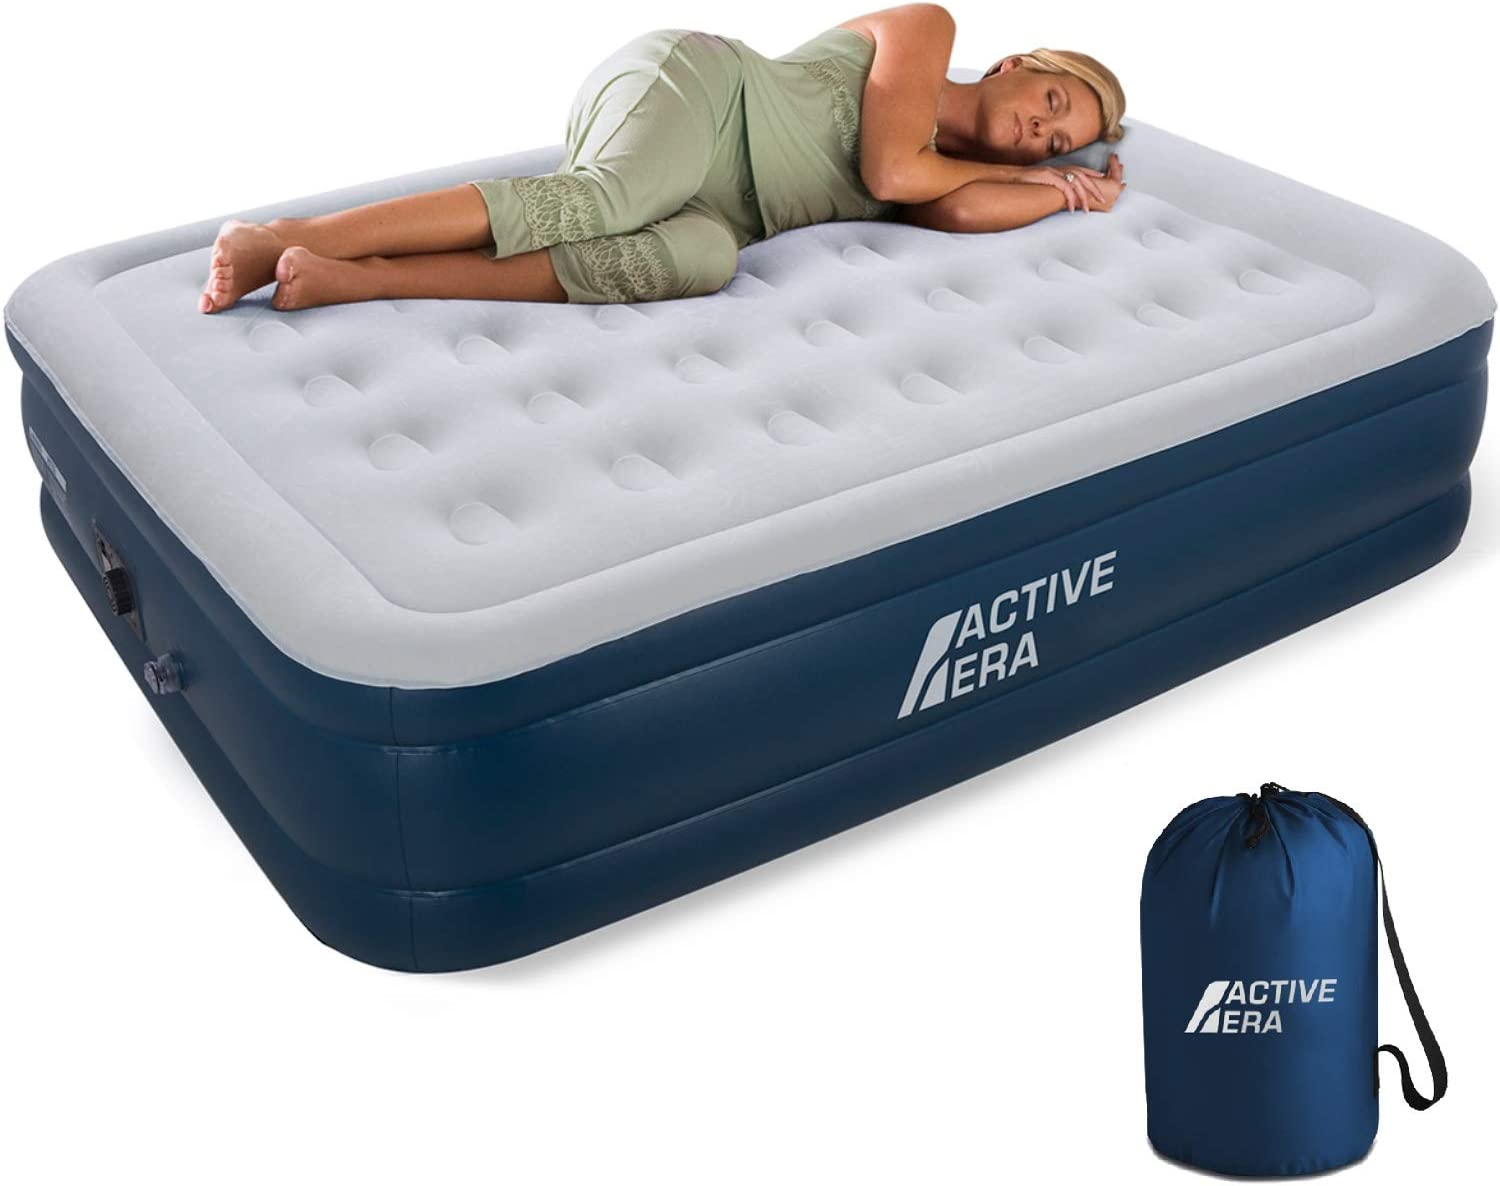 Active Era Queen Air Mattress with Built in Pump & Raised Pillow – Puncture Resistant with Waterproof Flocked Top, Elevated Inflatable Air Bed for Guests: Sports & Outdoors